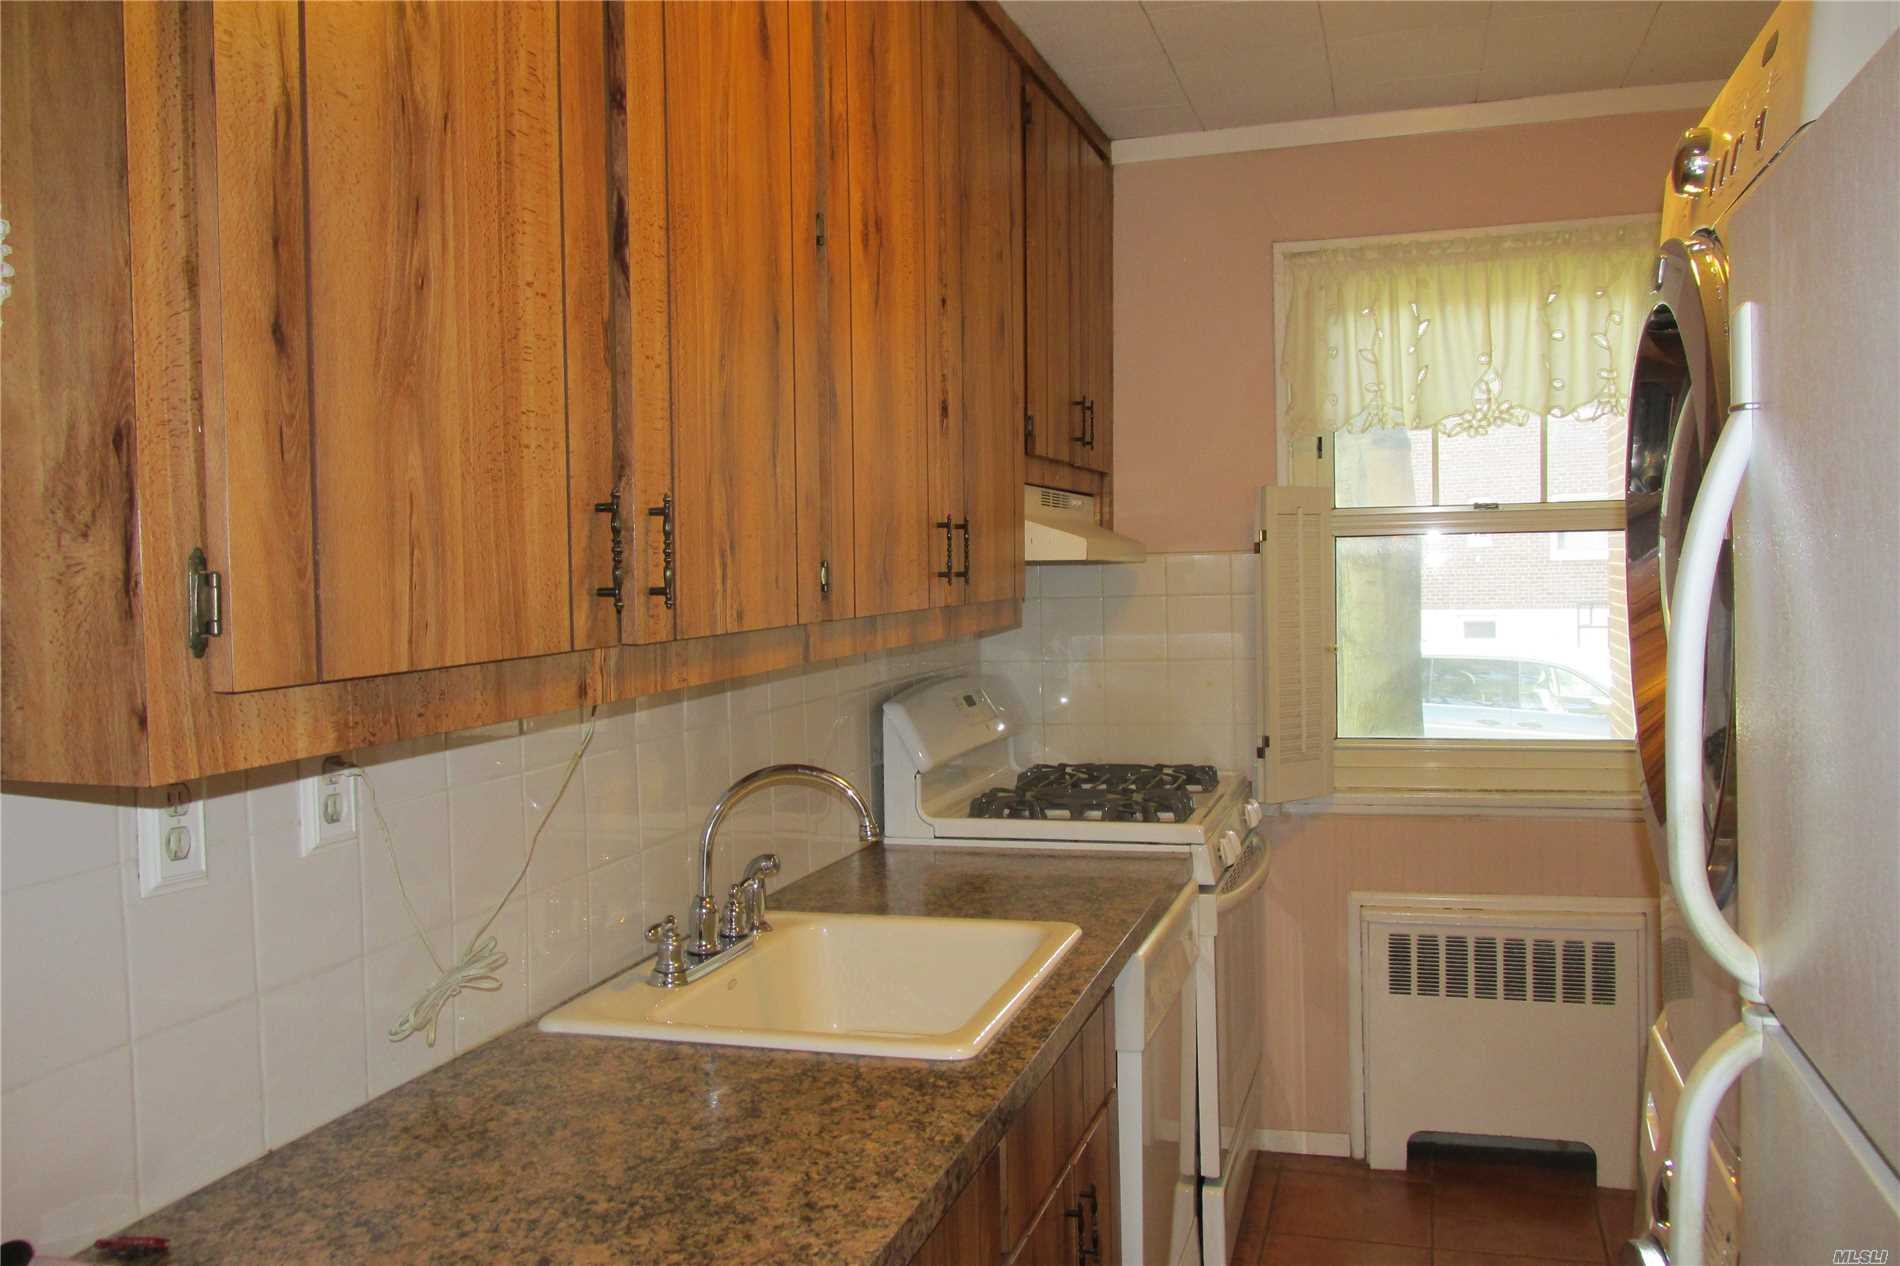 249-46 60 Th Ave Unit Lower, Little Neck, NY, 11362 - MLS# 3061029 ...